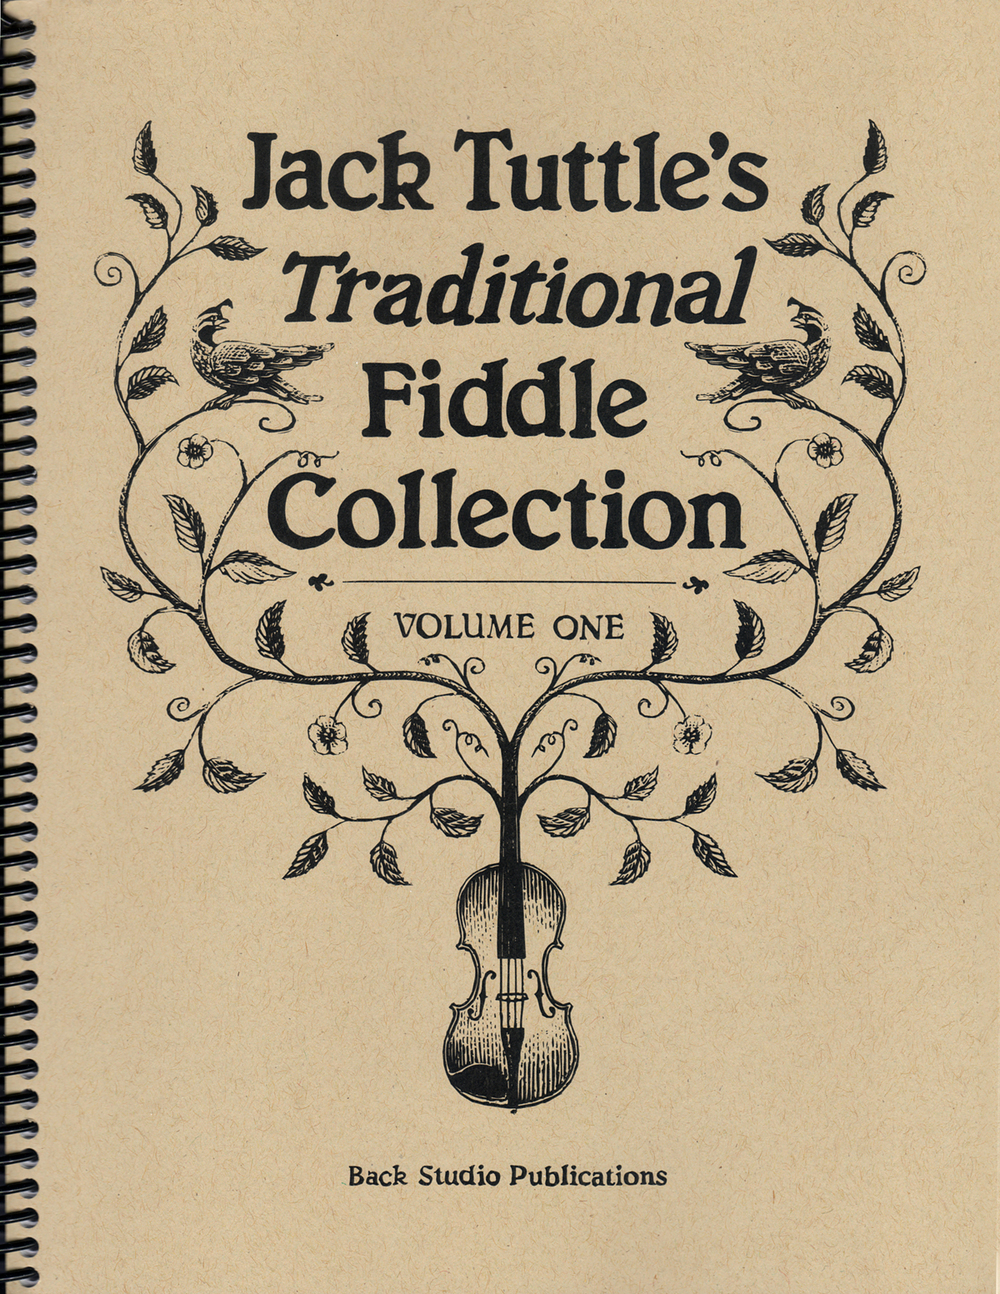 Jack Tuttle's Traditional Fiddle Collection, Vol. 1